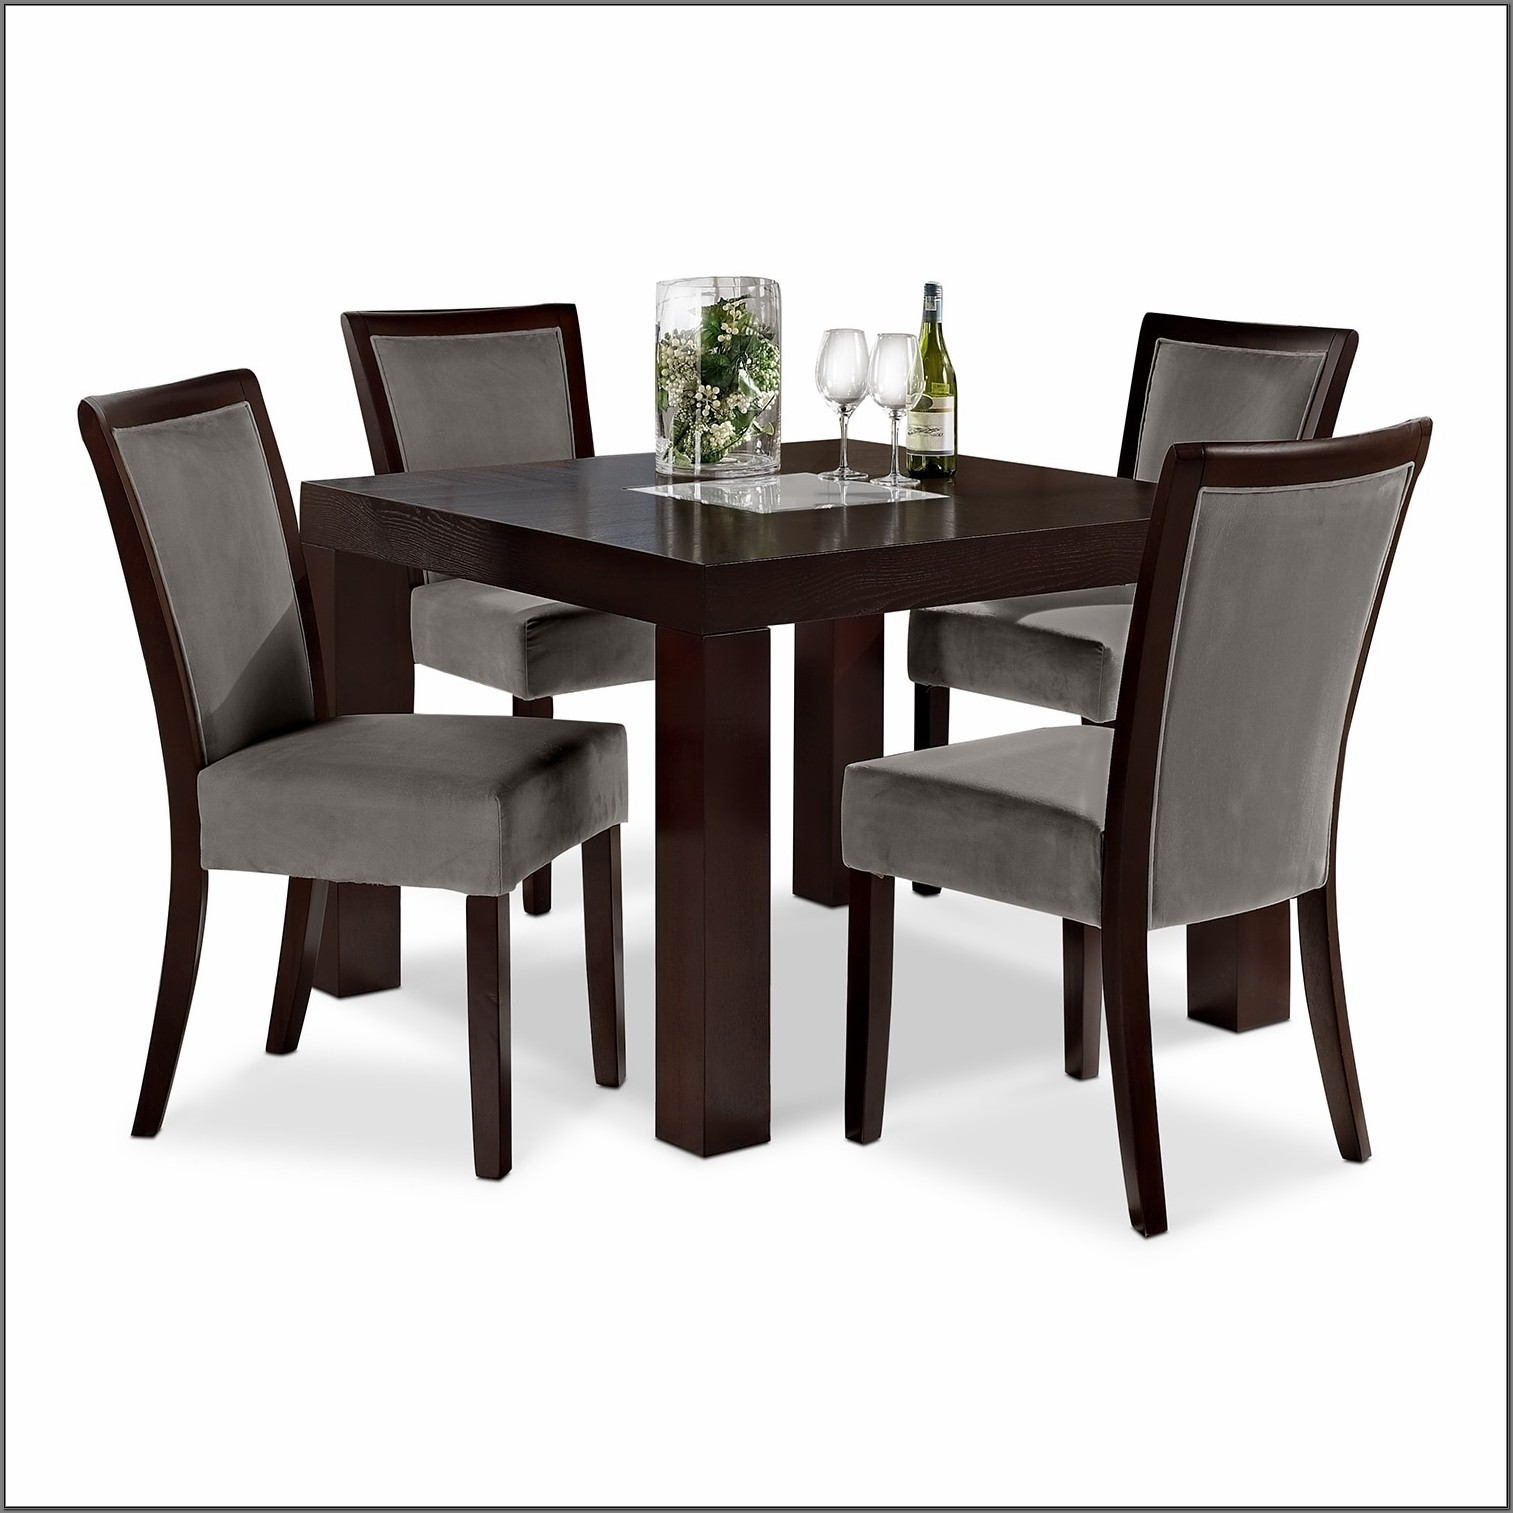 Value City Dining Room Furniture